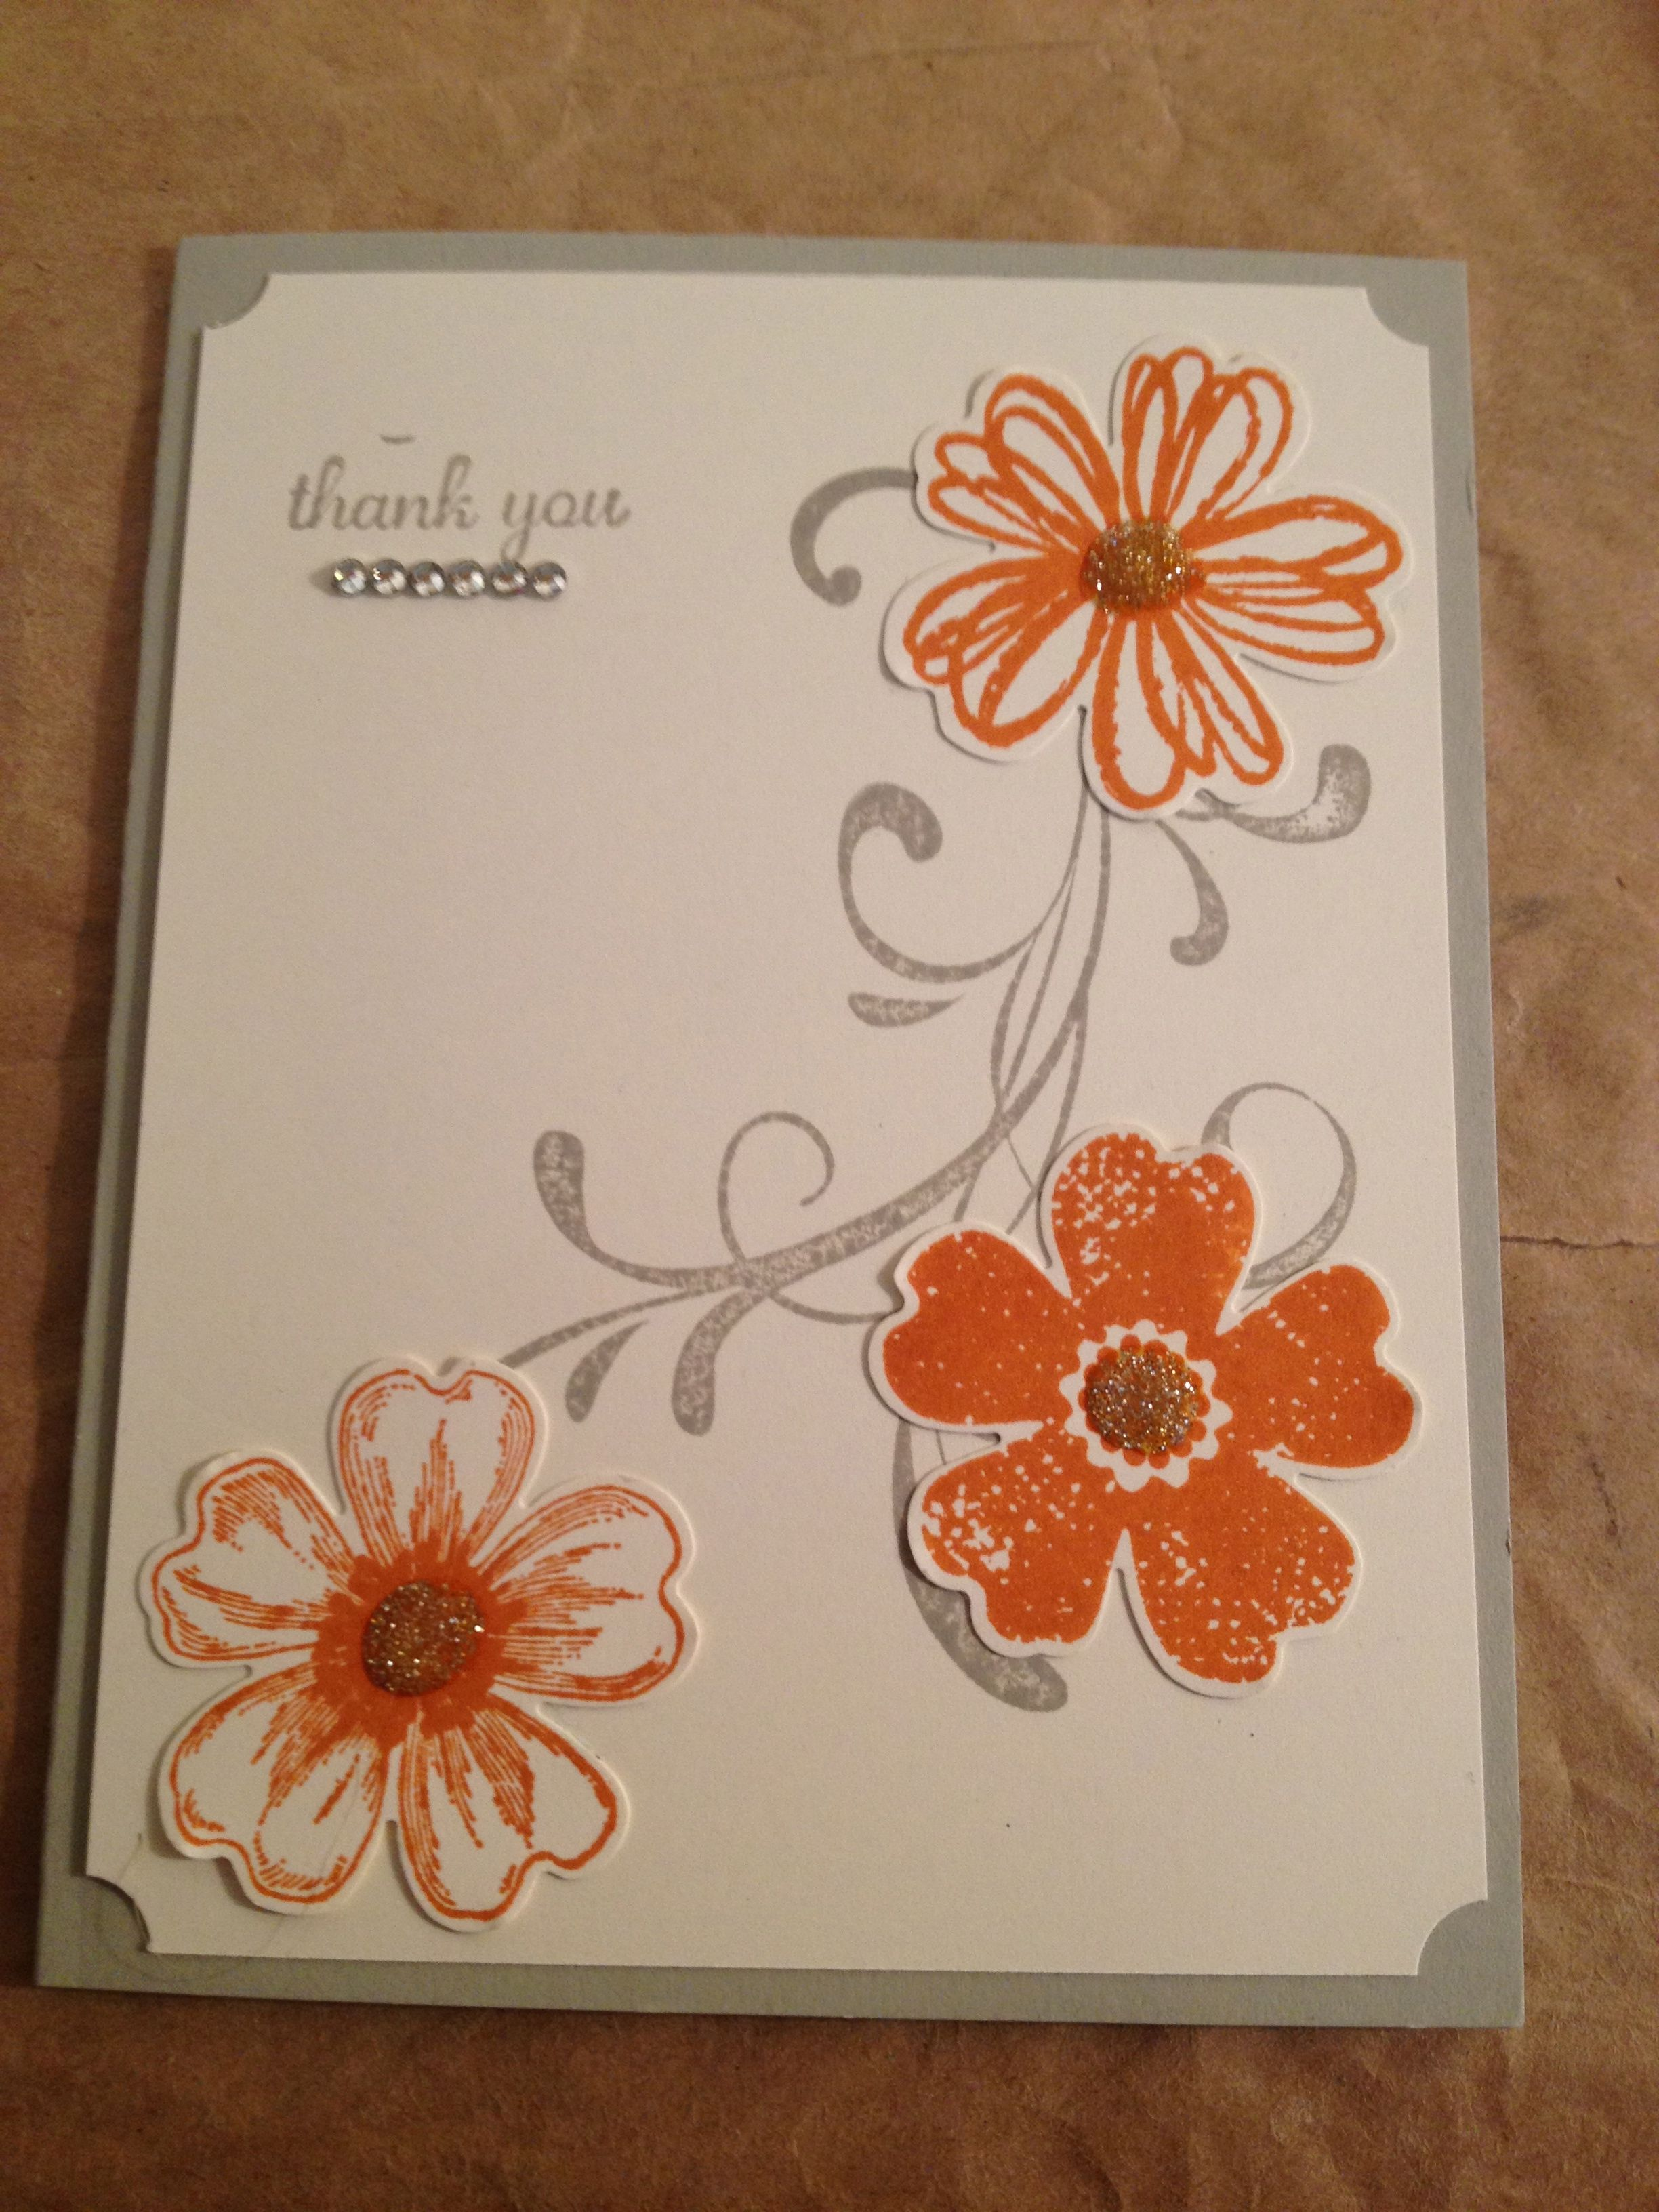 Stampin Up - Thank You - Flower Shop - http://anfletcher.stampinup.net